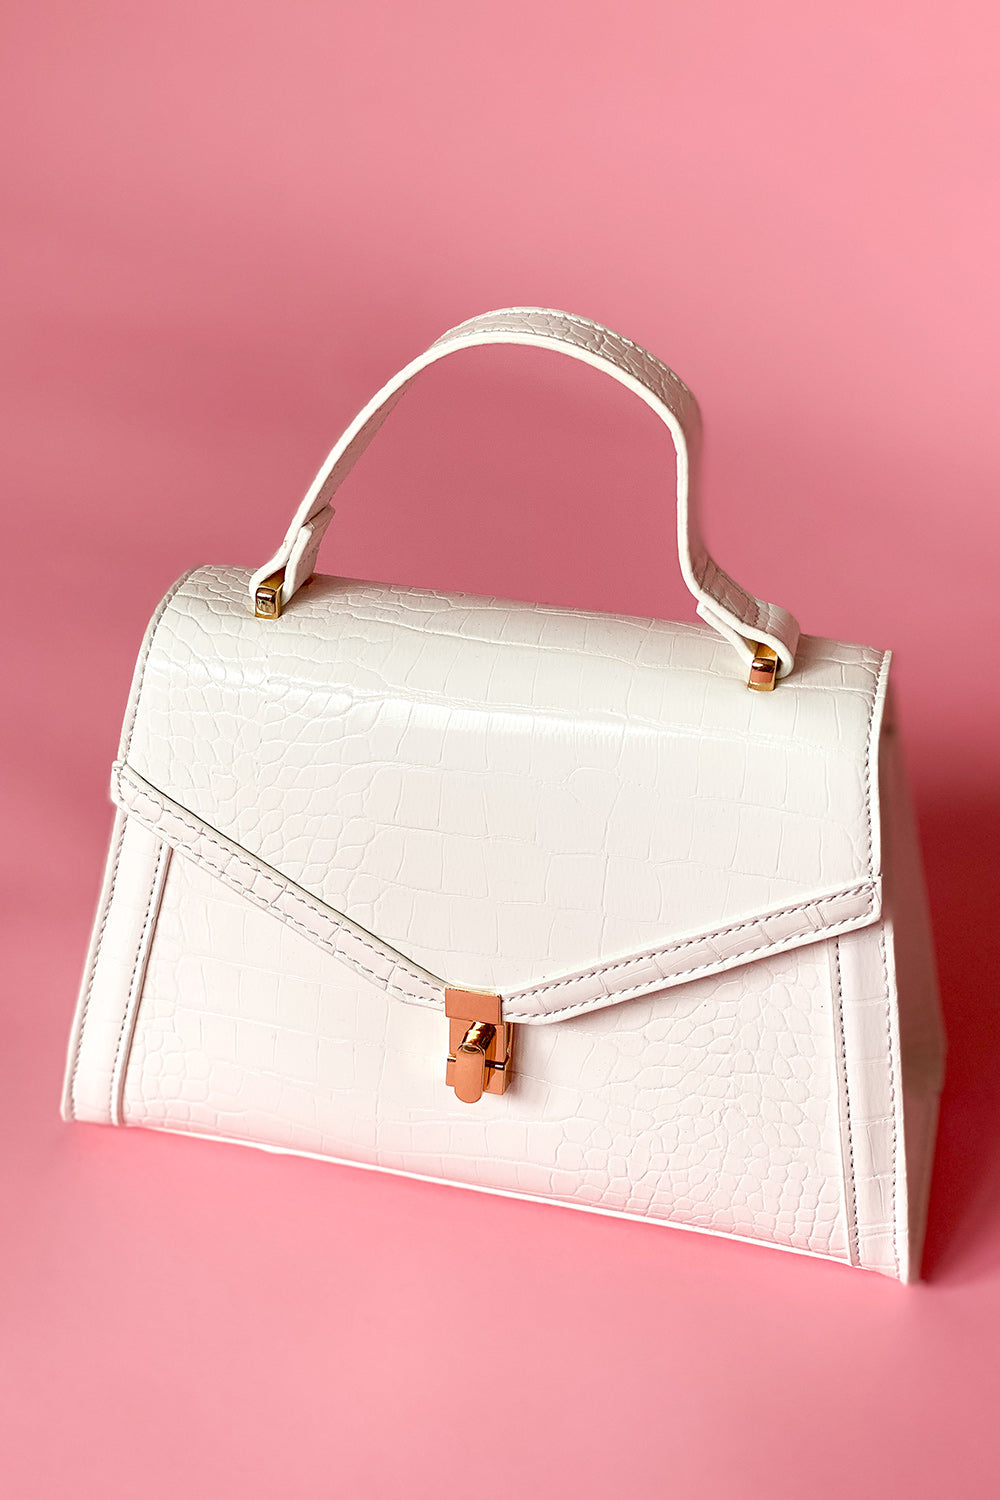 White Crocodile Handbag